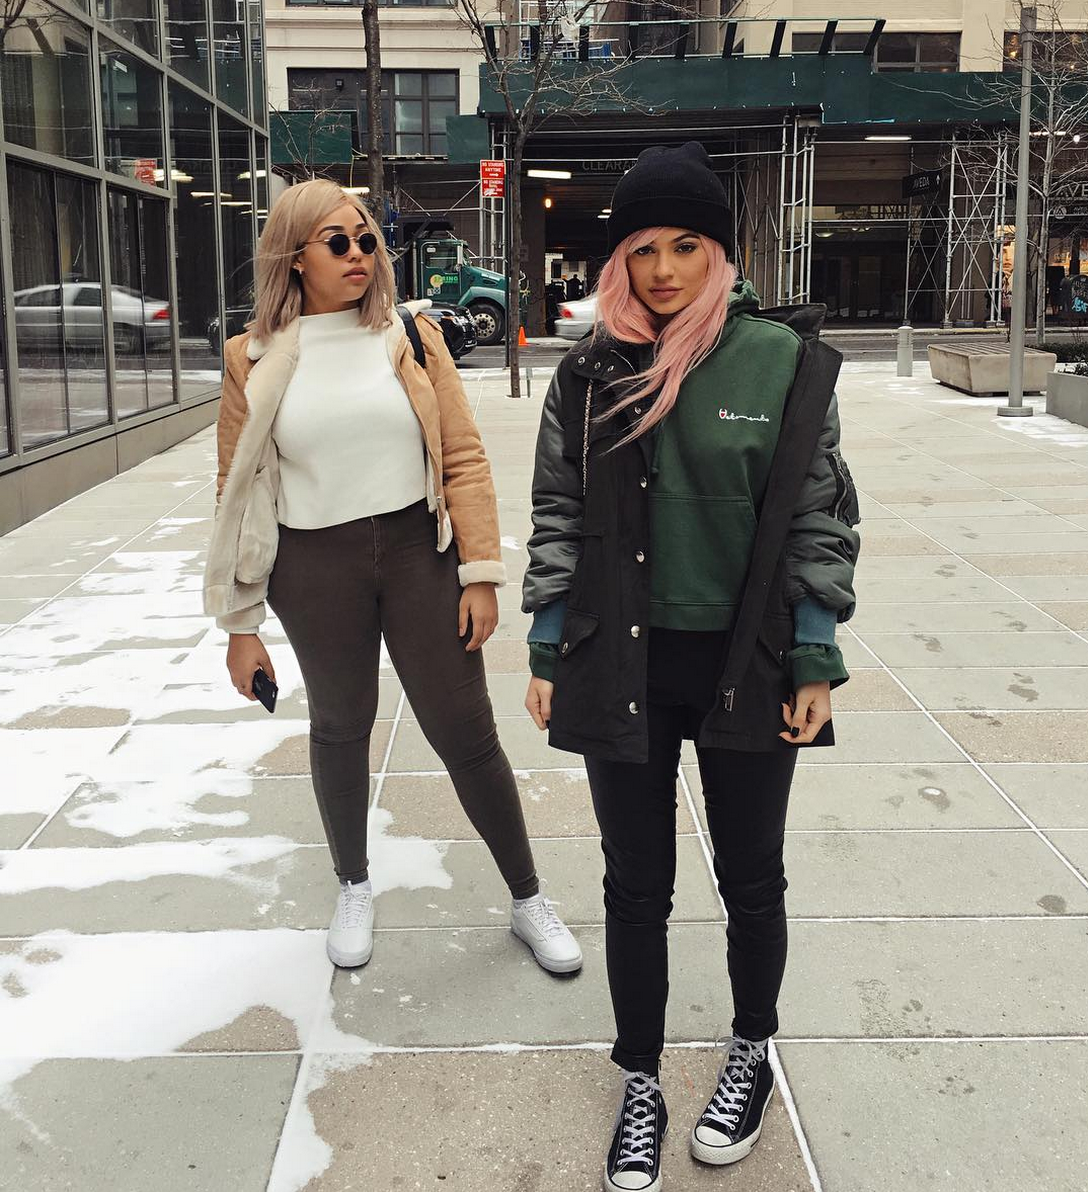 Kylie jenner and bestie jordyn woods debuted a possible Fashion style on instagram